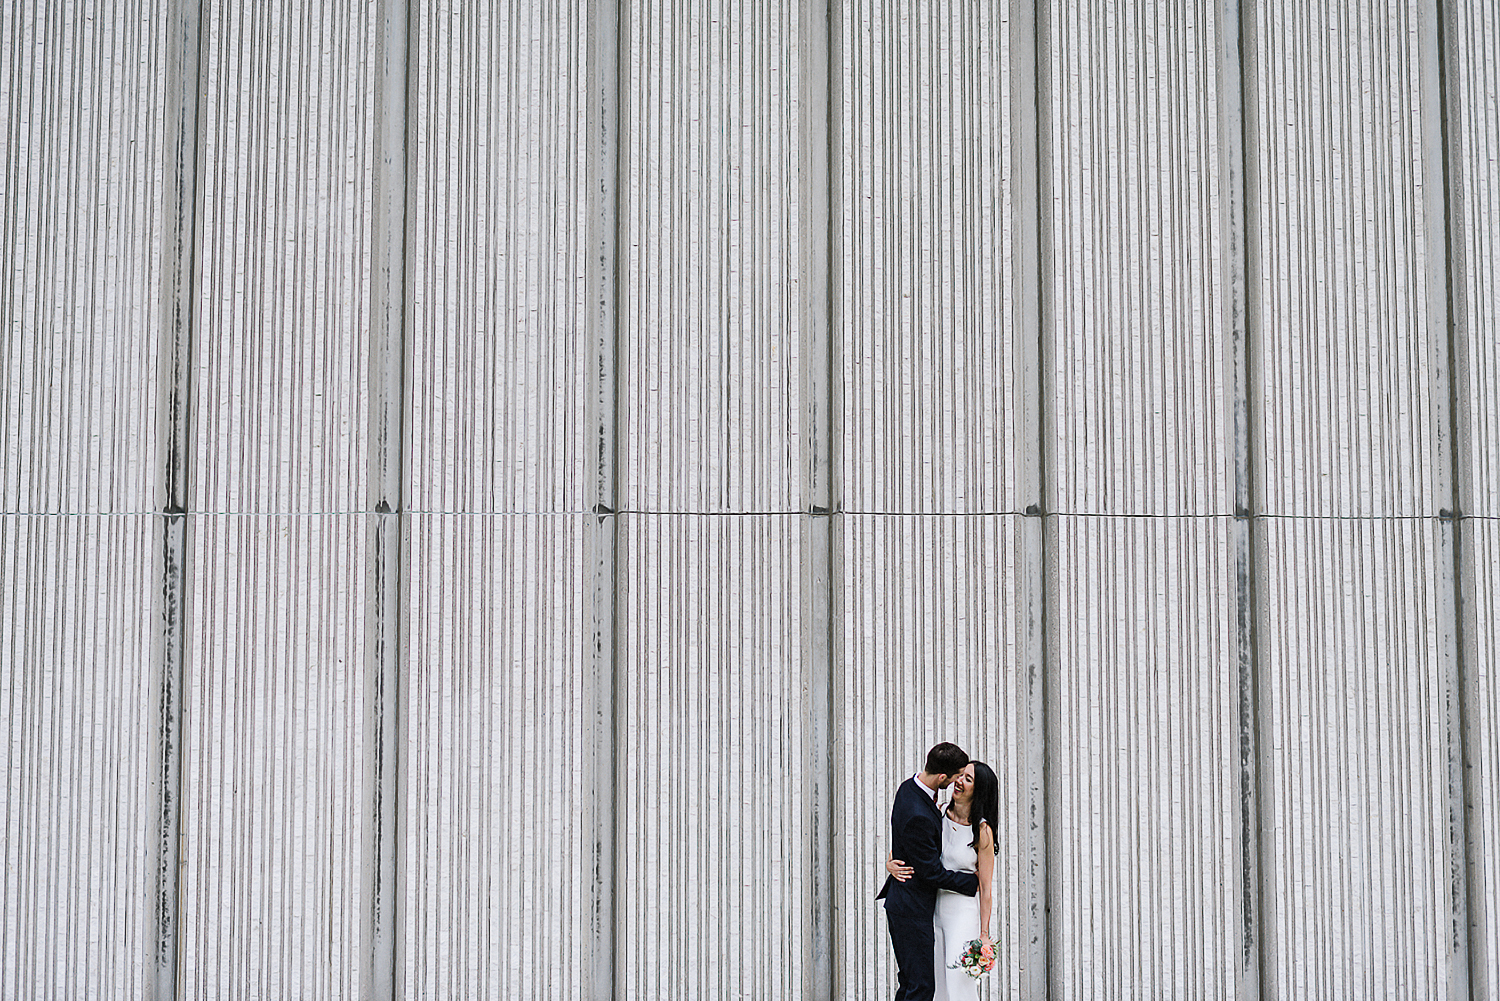 52-541-Best-City-Hall-Elopement-Photography-Toronto-Ontario-Canada-Urban-Summer-Wedding-Vintage-Bride-and-Groom-Candid-Genuine-Moments-Documentary-Photojournalistic-Style-Candid-Fine-Art-Portraiture-Bride-Smile.jpg